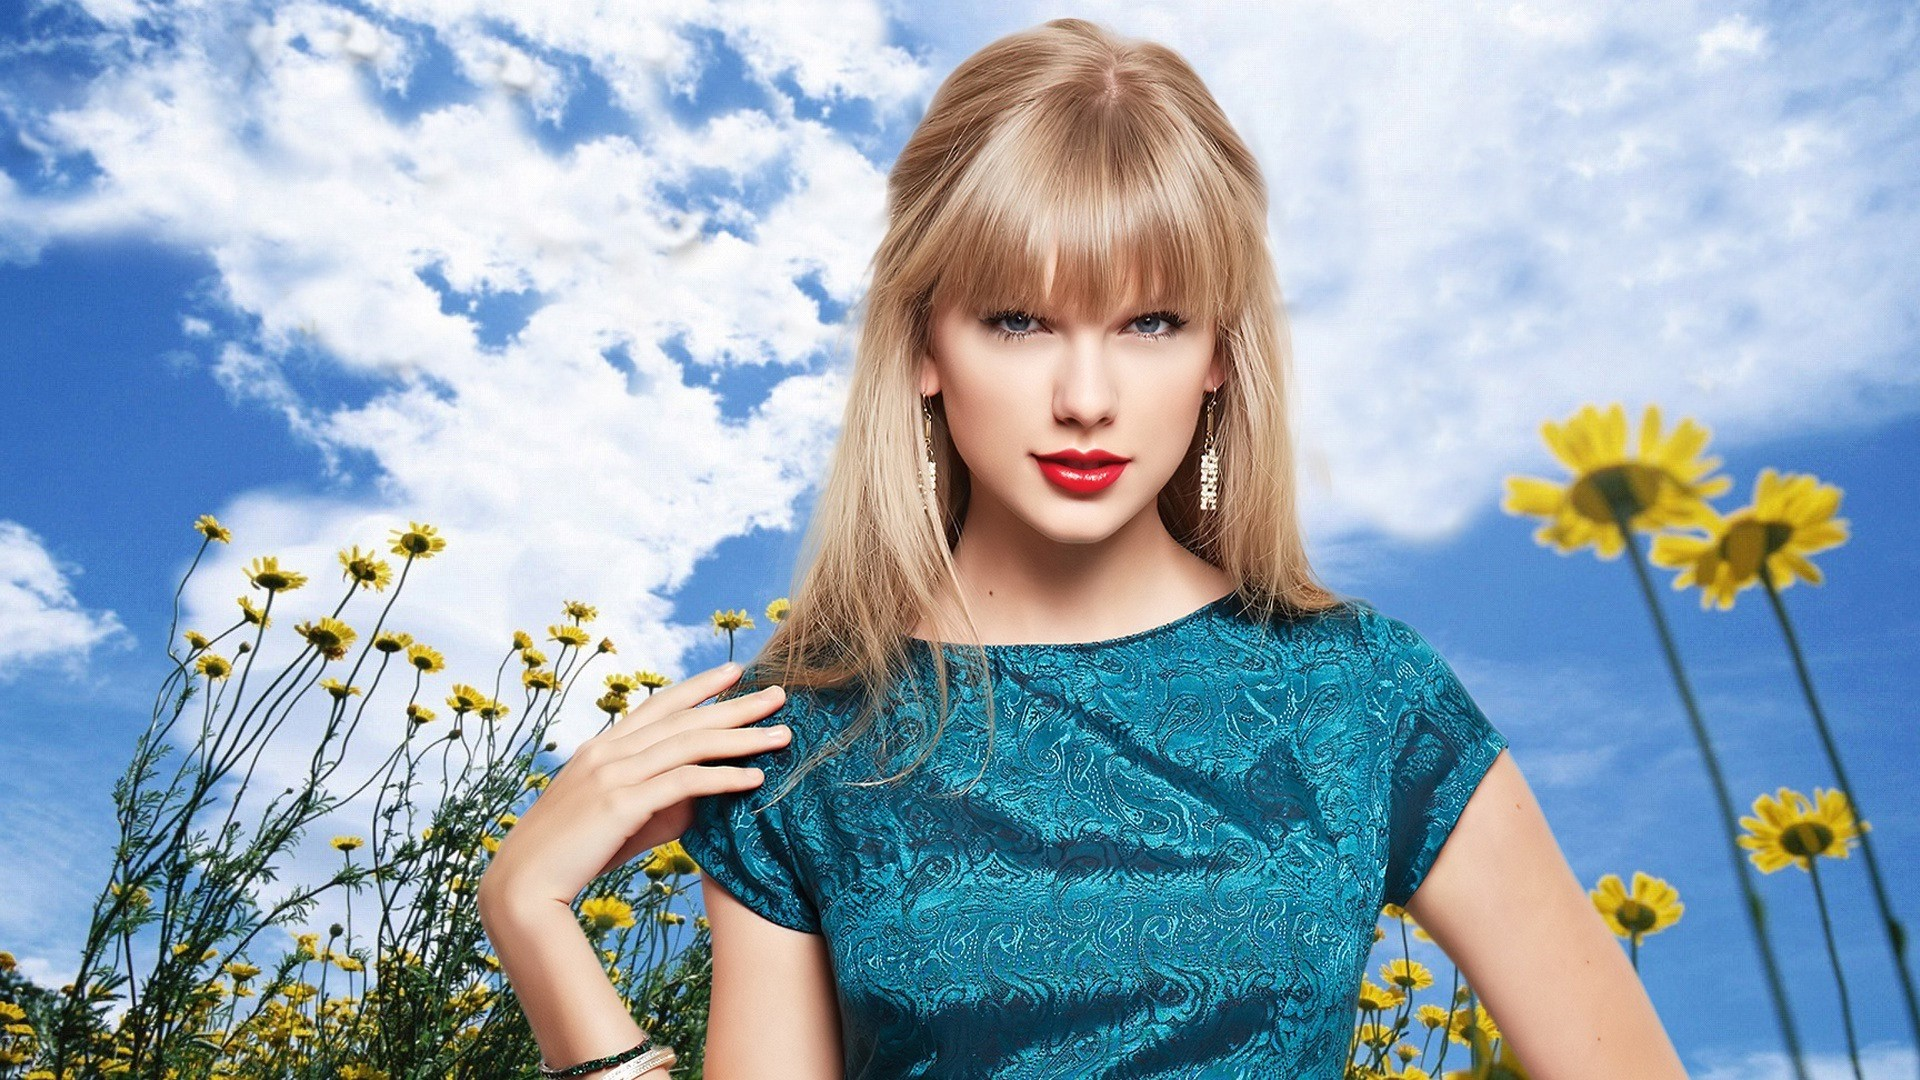 Taylor Swift Wallpaper for pc